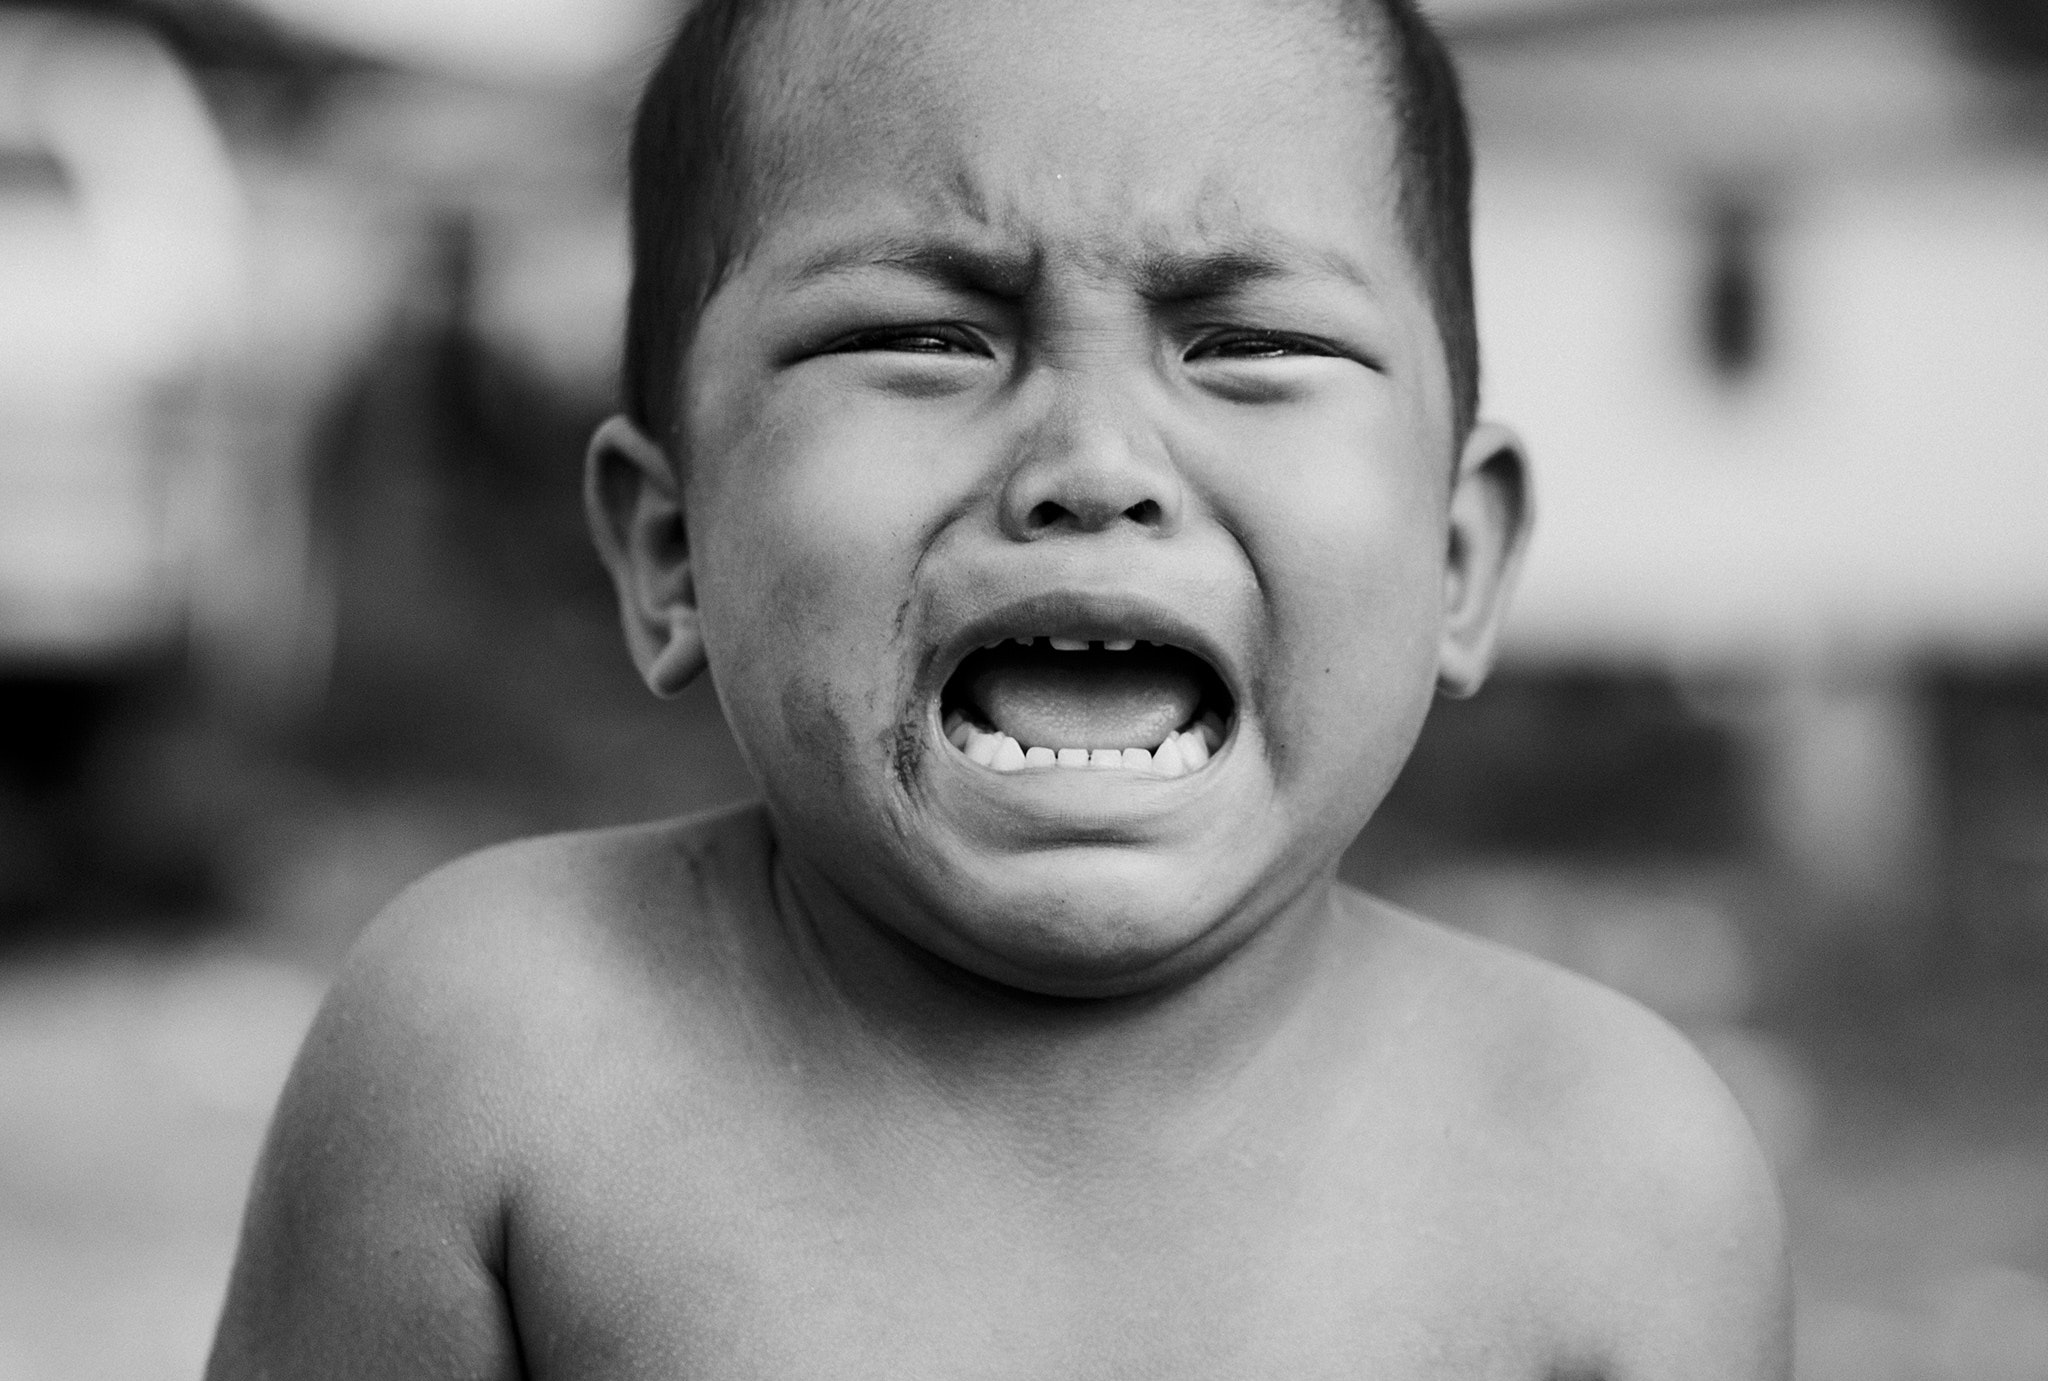 Gray Scale Photo of Crying Topless Boy, Black-and-white, Kid, Son, Smile, HQ Photo